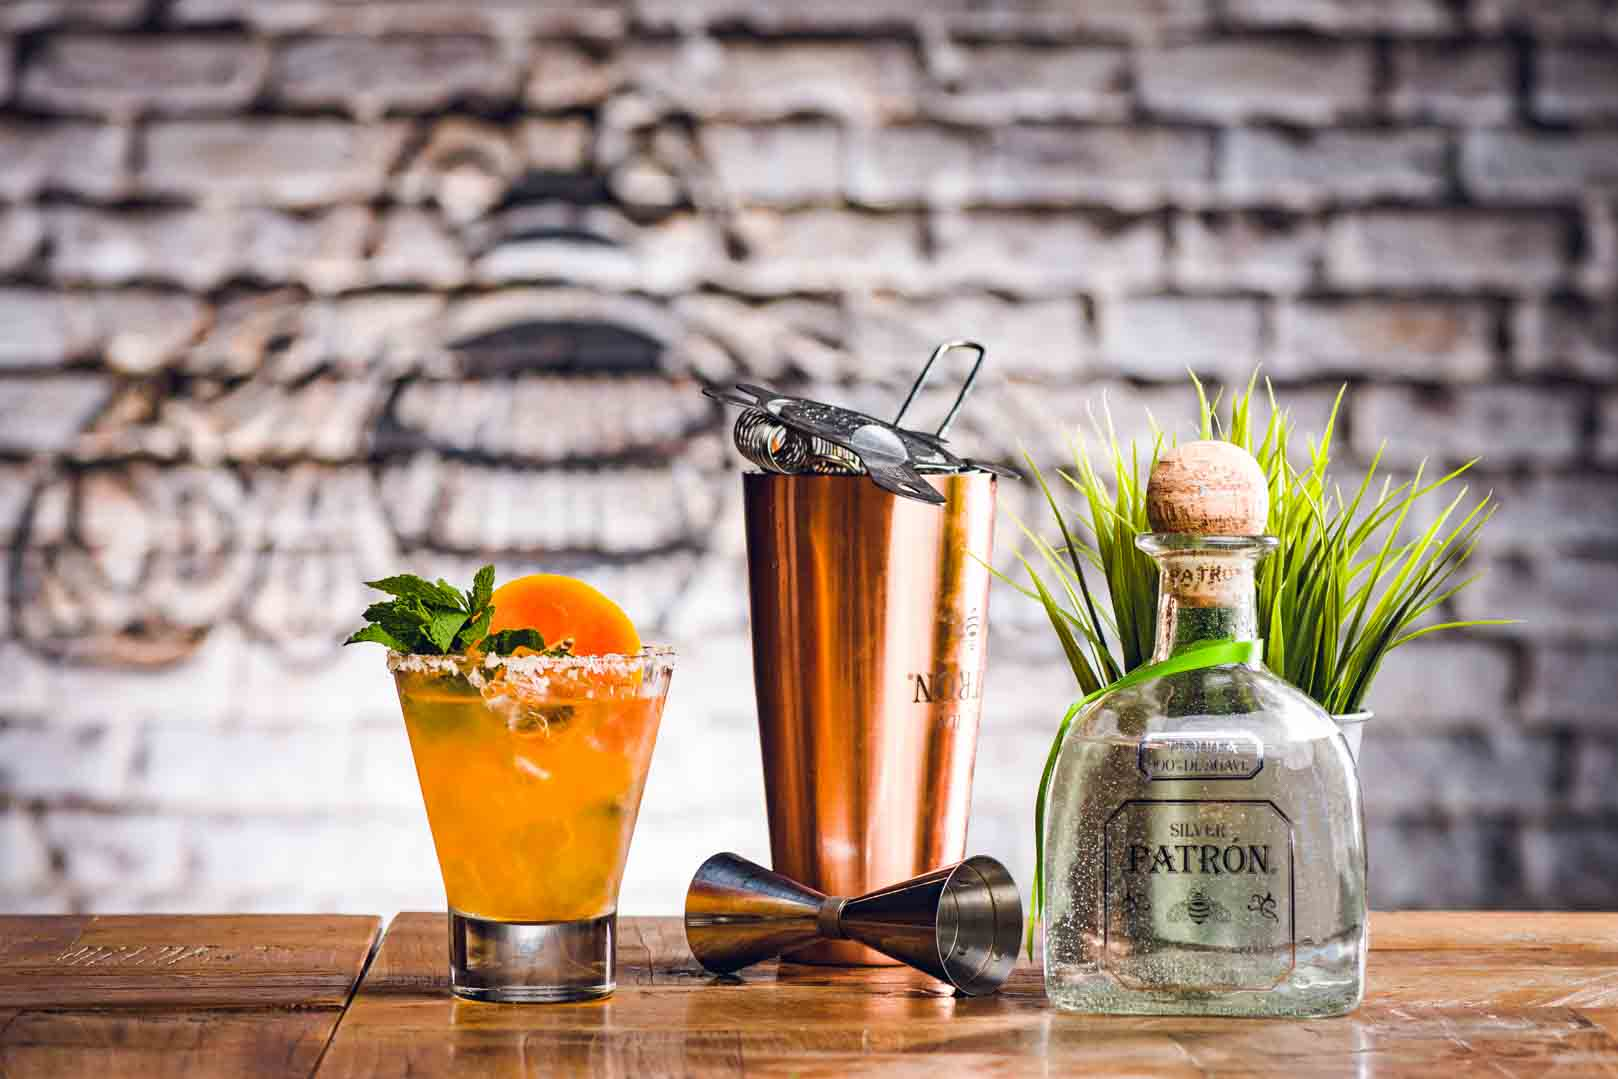 Jure Ursic Photography - Linden Consultancy and Royal Punch Catering Tequila patron-53